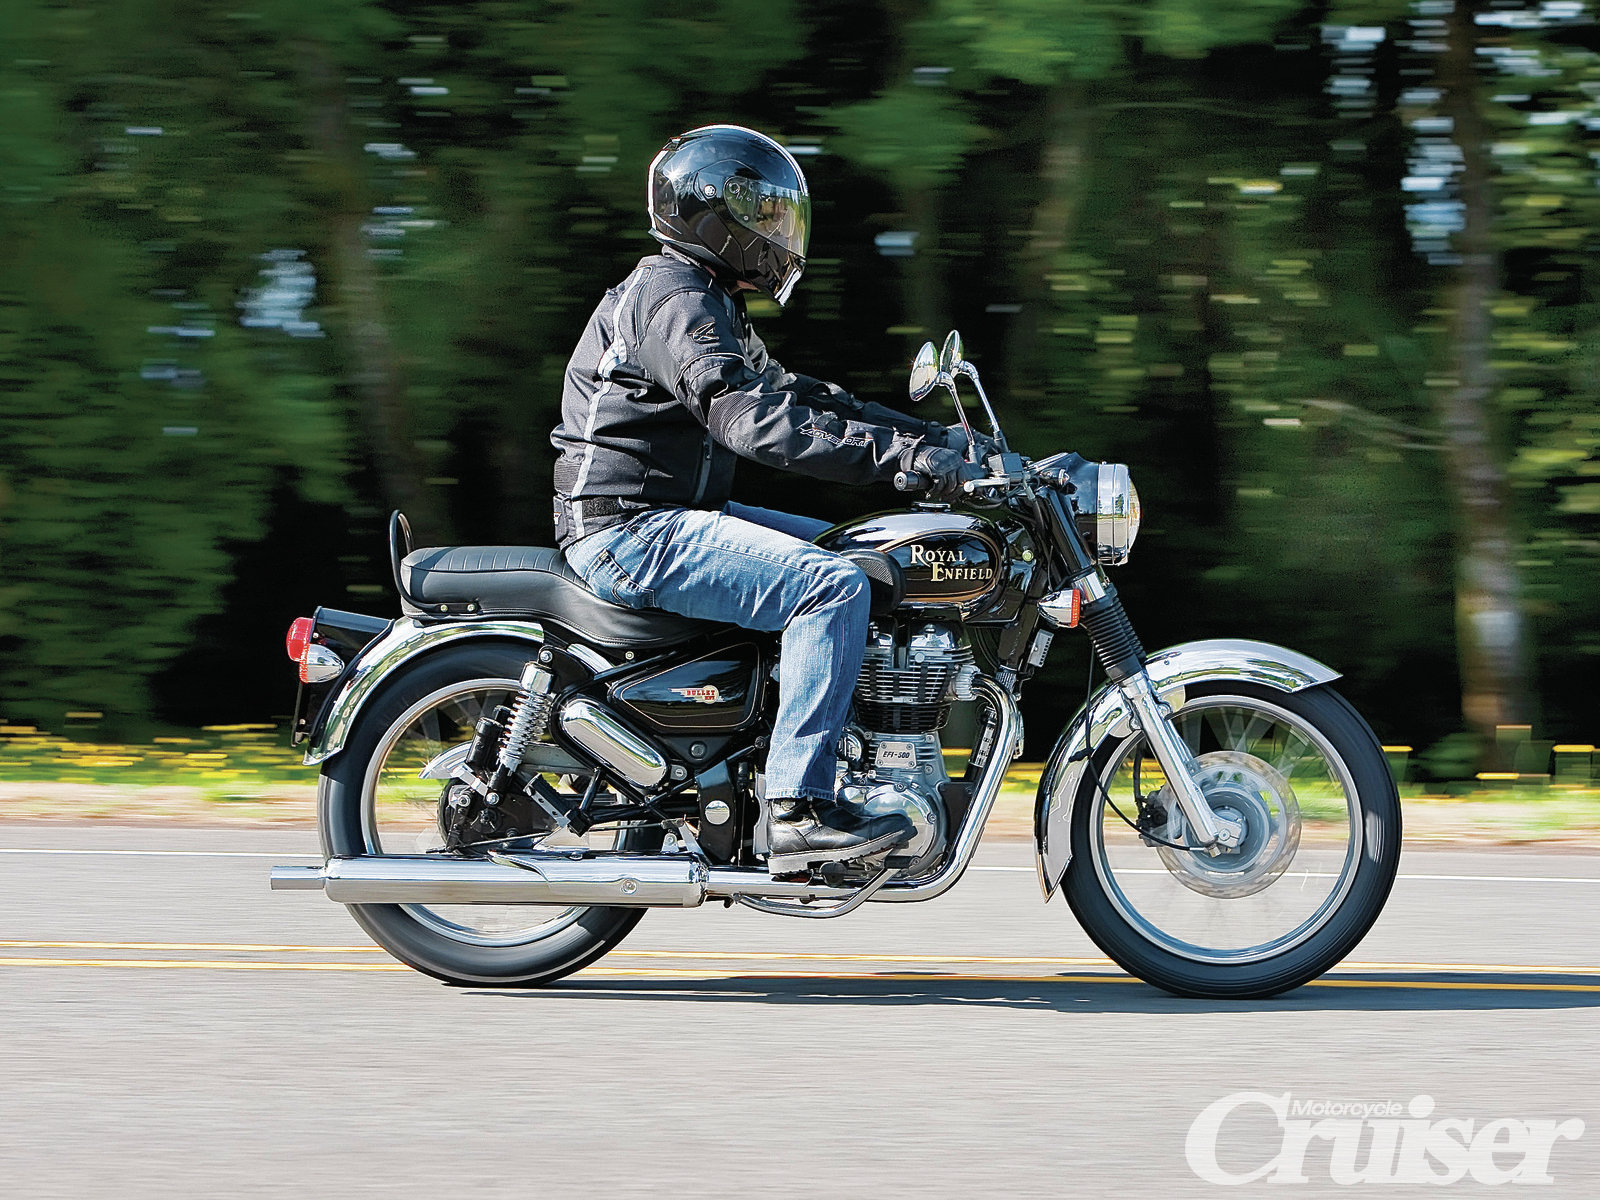 Royal Enfield Bullet G5 Classic EFI images #127318